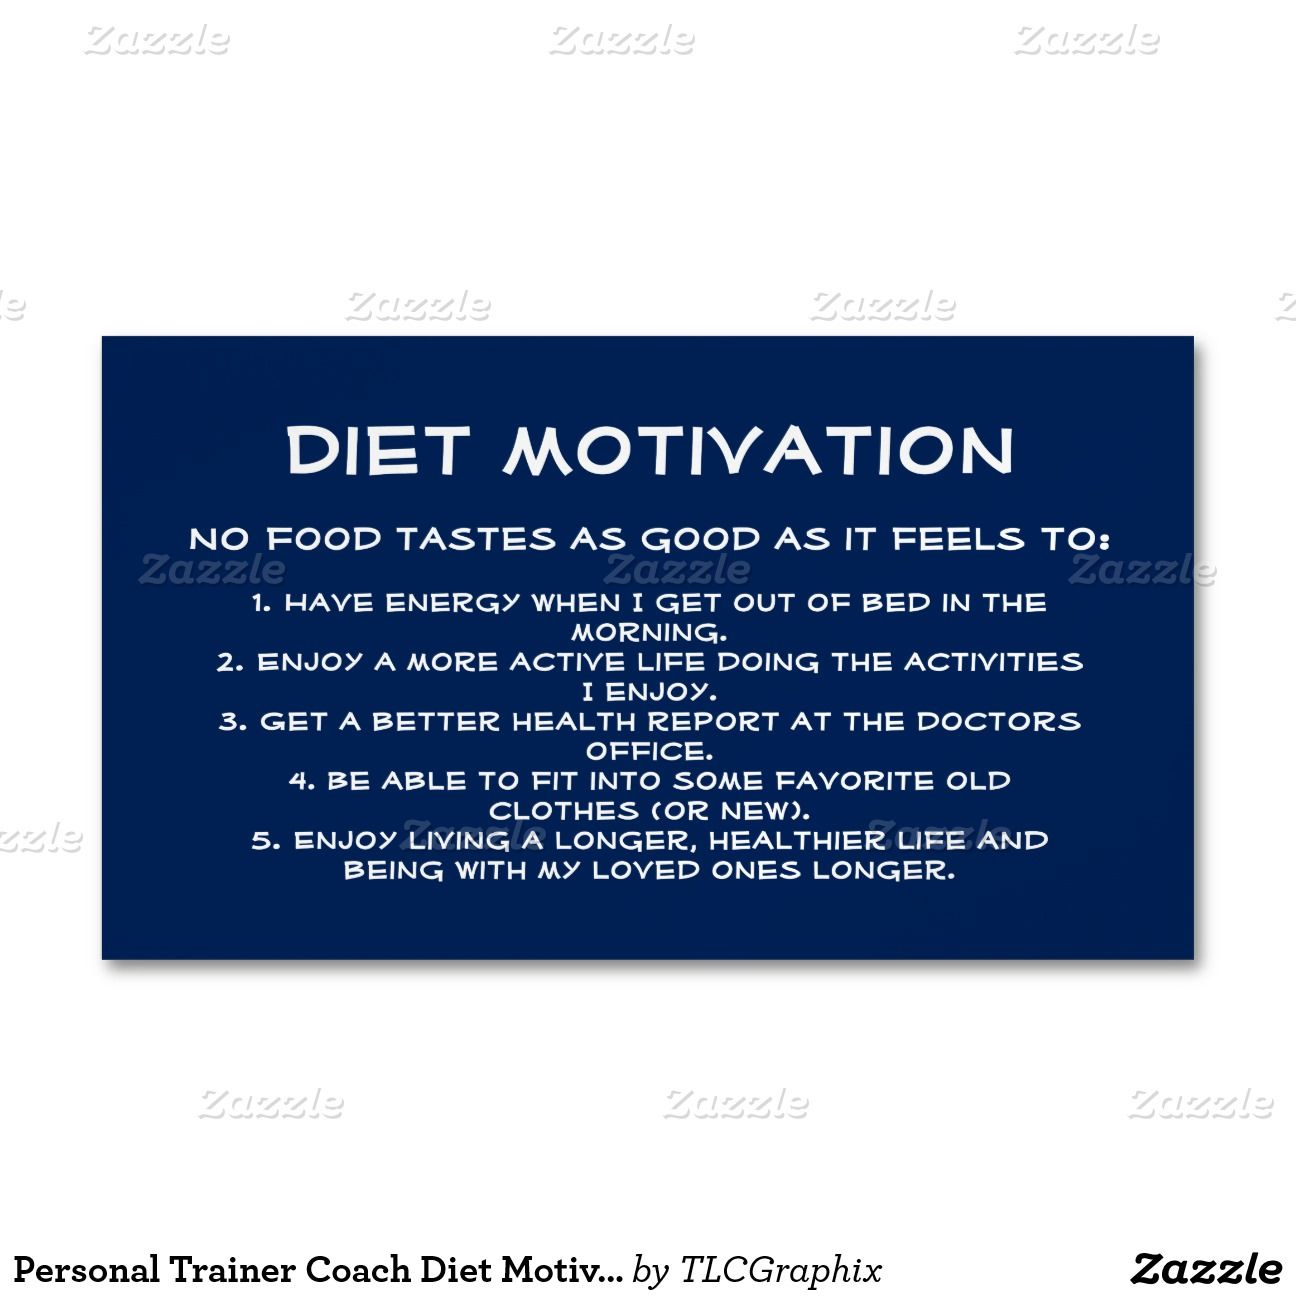 Personal Trainer Coach Diet Motivation Blue White Magnetic Business Cards No food tastes as good as it feels to have energy, feel good, be active, healthy, fit into those old loved clothes and enjoy a longer, healthier life! Great for a trainer, nutritionist, diet or sports coach. Help your clients stay on track and motivate weight loss !